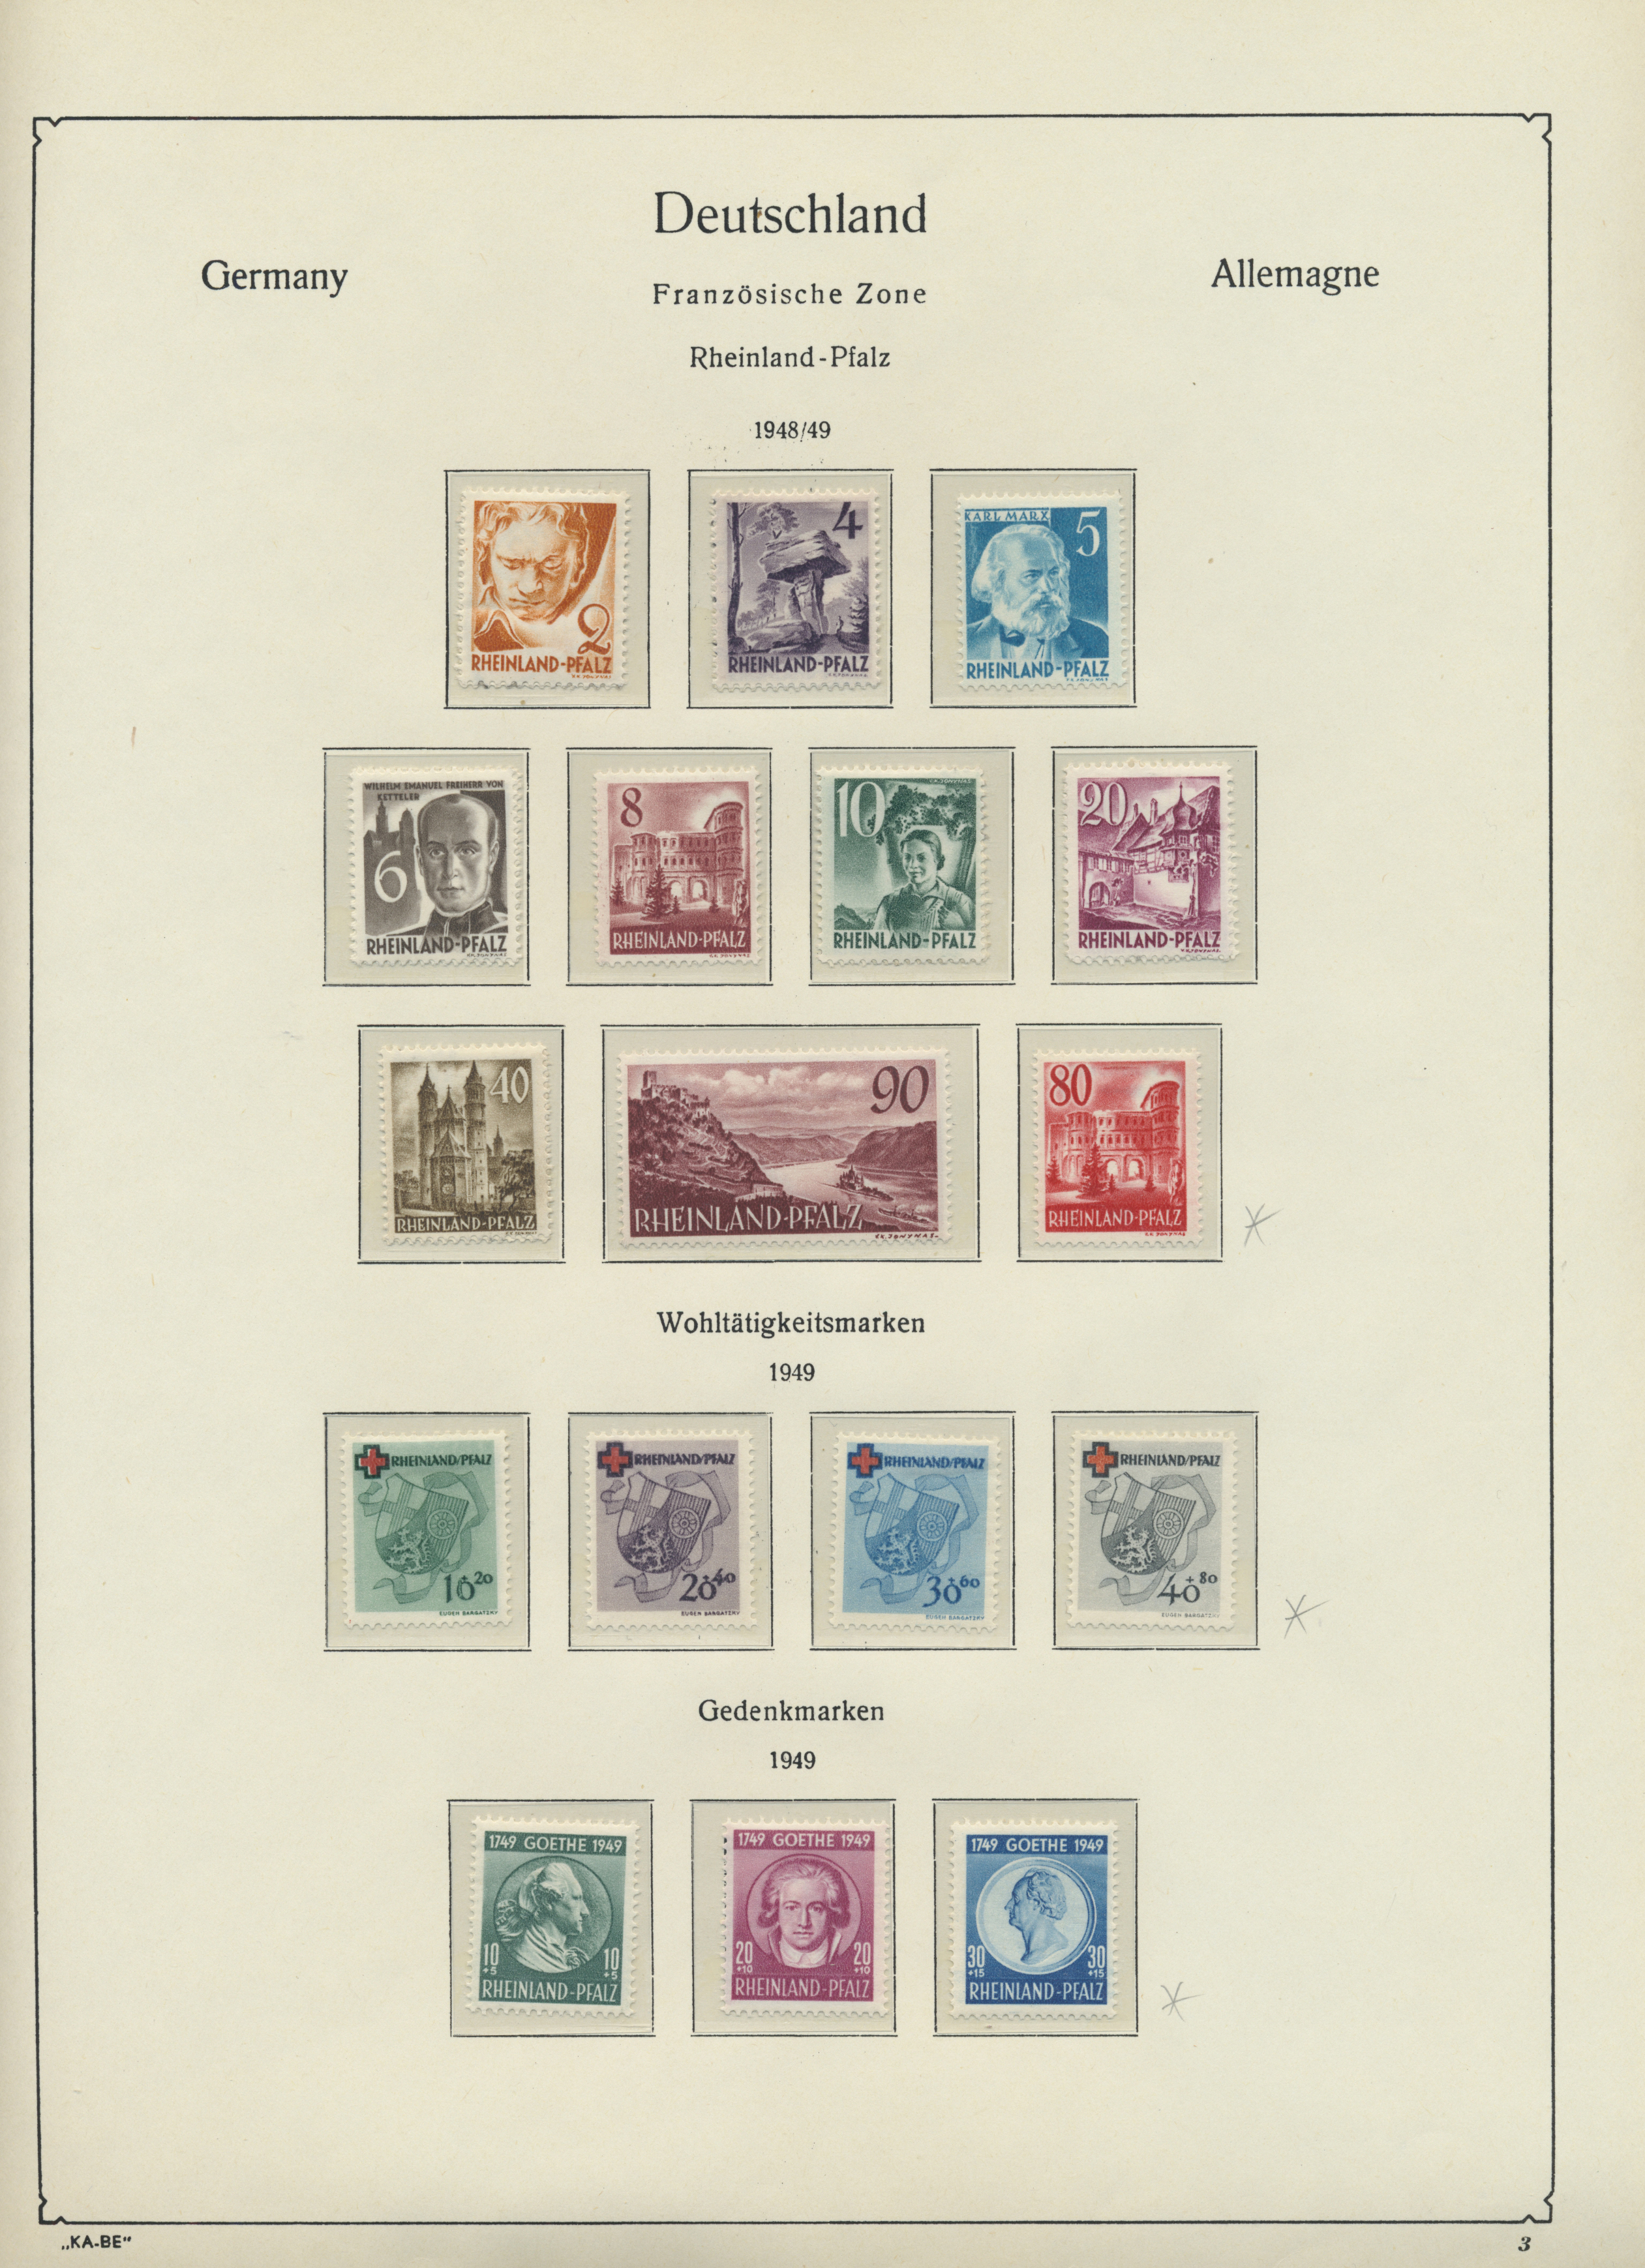 Lot 34046 - nachlässe  -  Auktionshaus Christoph Gärtner GmbH & Co. KG Collections Germany,  Collections Supplement, Surprise boxes #39 Day 7